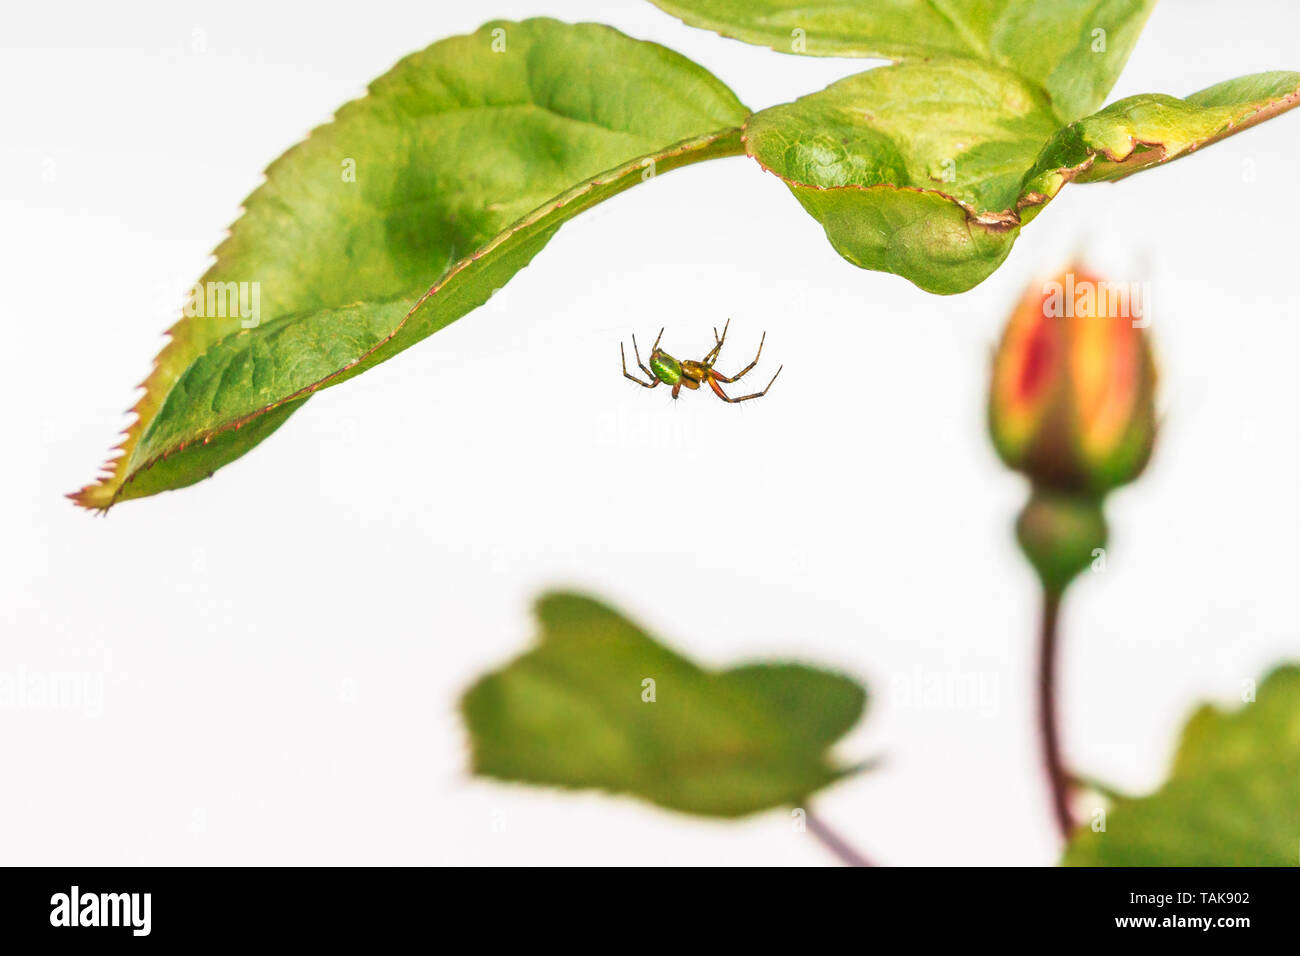 A green orb or cucumber spider weaving its web under the leaf of a rose bush with a red and yellow rose bud in soft focus in the background against a  - Stock Image